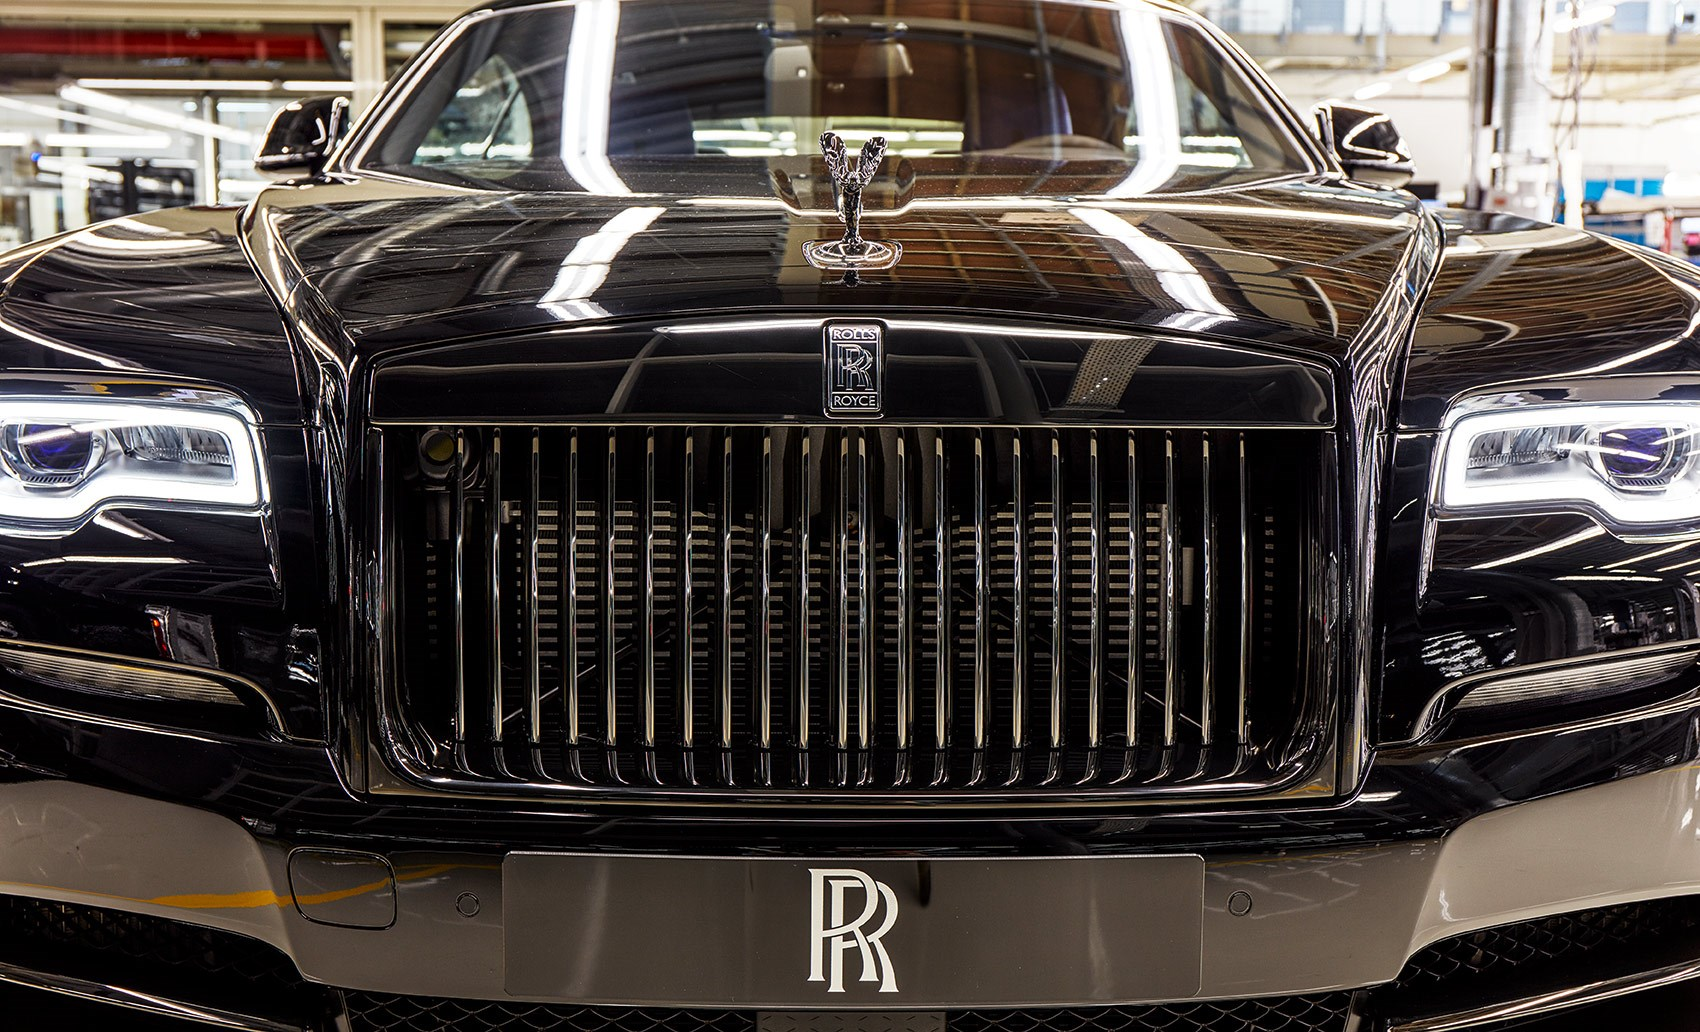 inside rolls-royce: 800 hours and the job's a good 'un | car magazine